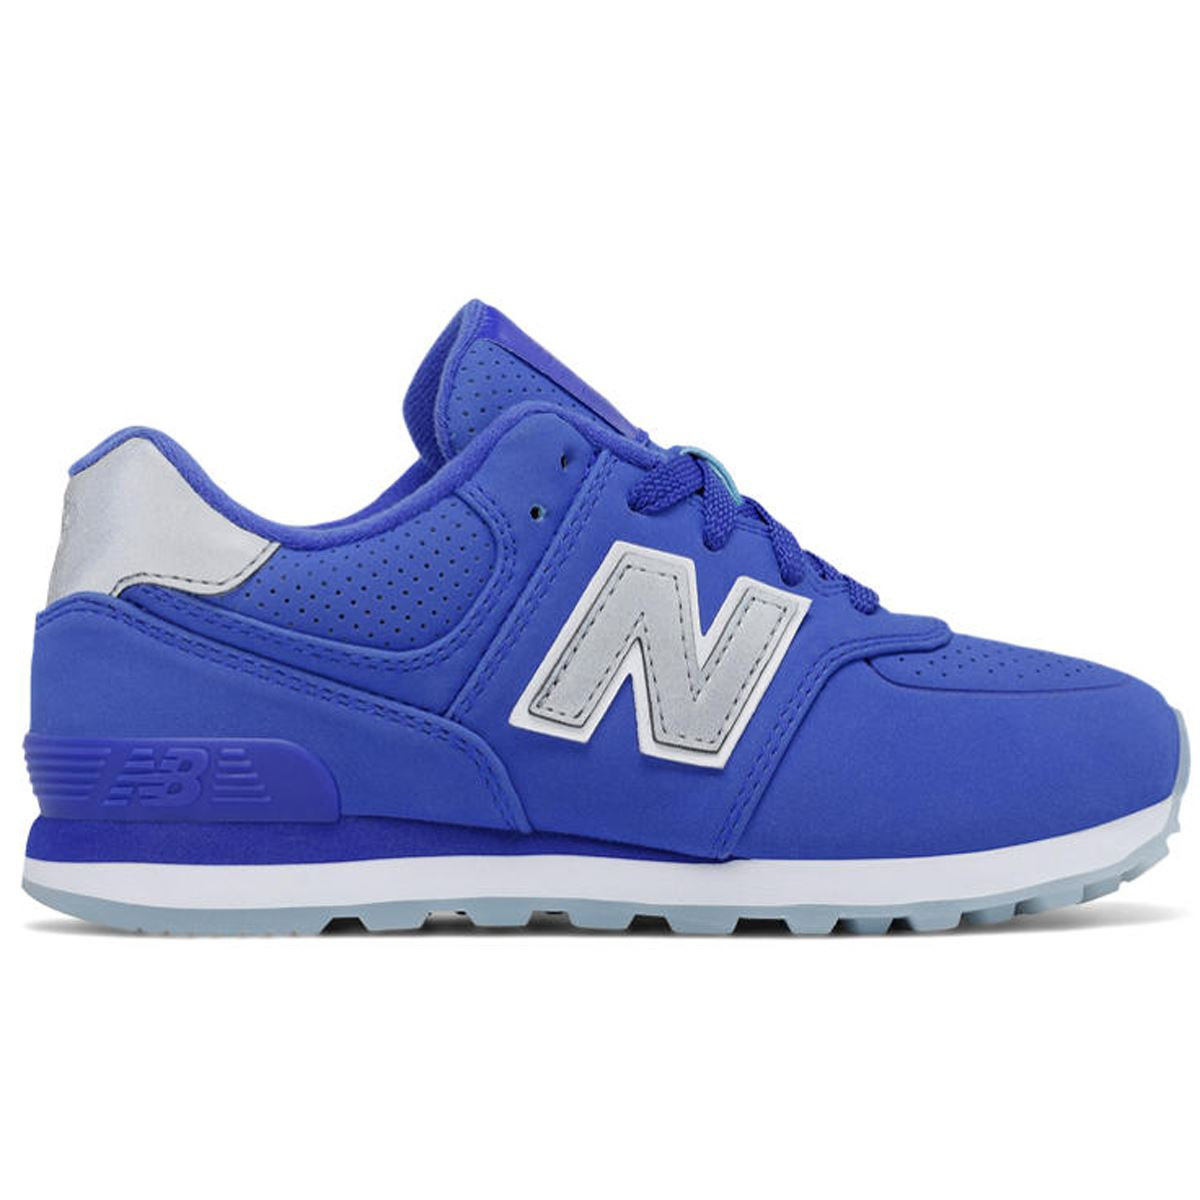 1d2ac594fa864 New Balance 574 Luxe Rep Blue Grey Boys and Girls trainers kids | eBay